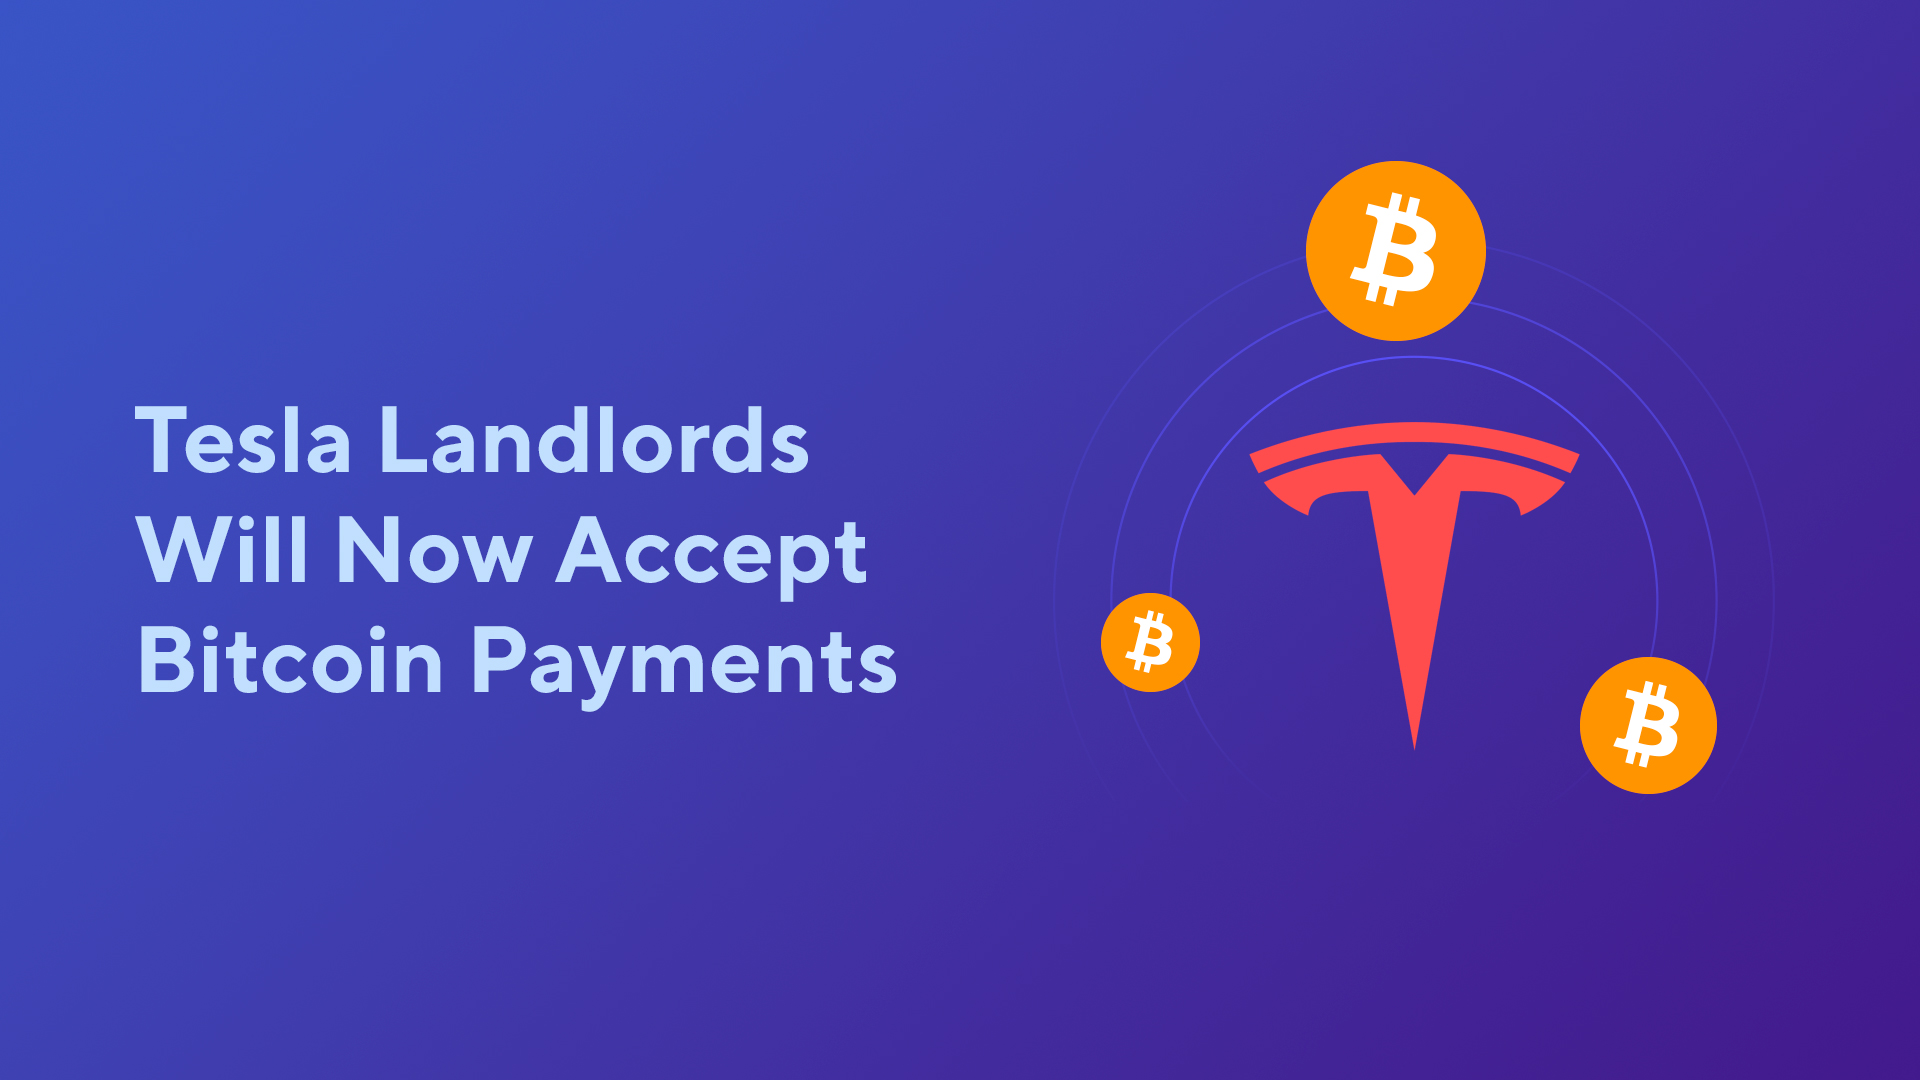 Tesla Landlords Will Now Accept Bitcoin Payments